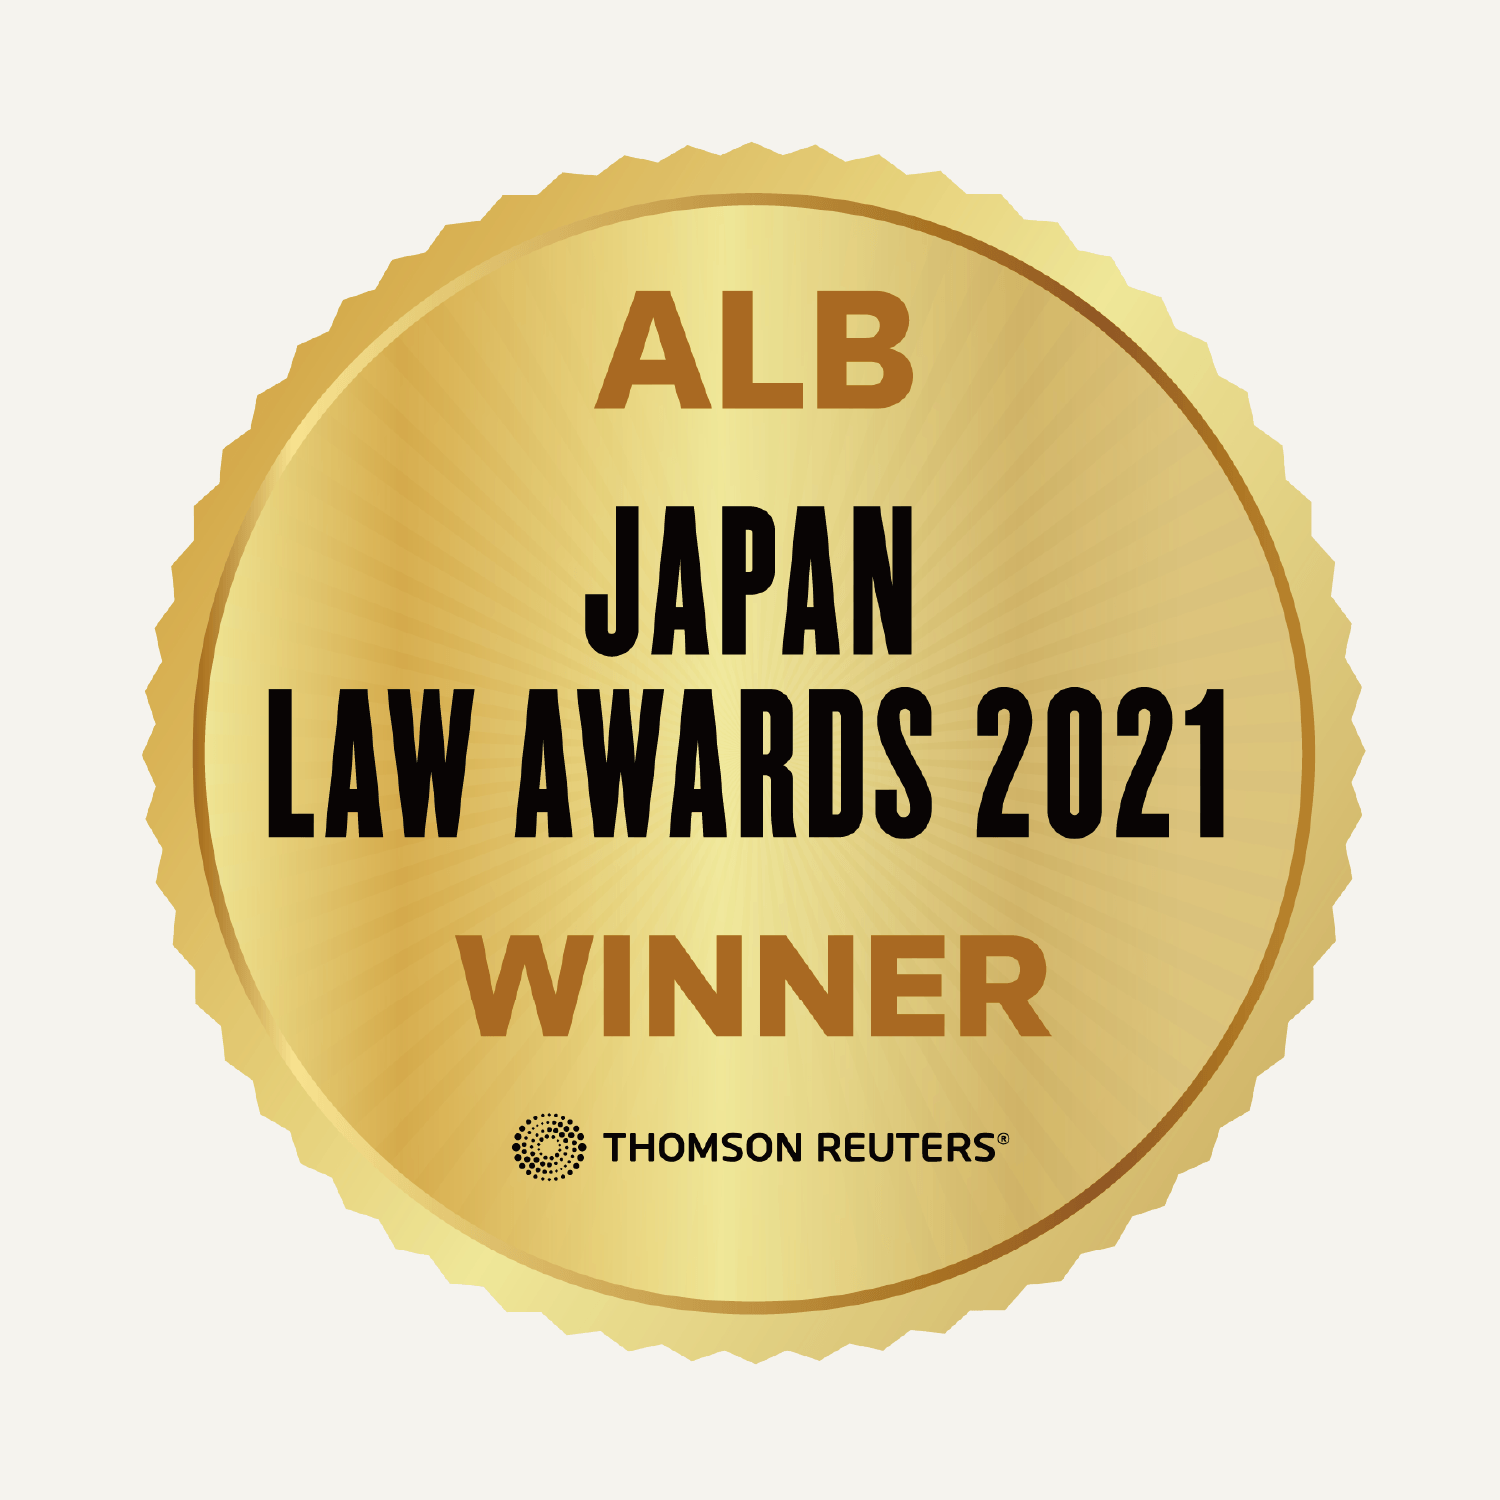 At the Asian Legal Business (ALB) Japan Law Awards 2021, Ian S. Scott (Partner) was chosen as Foreign Lawyer of the Year.